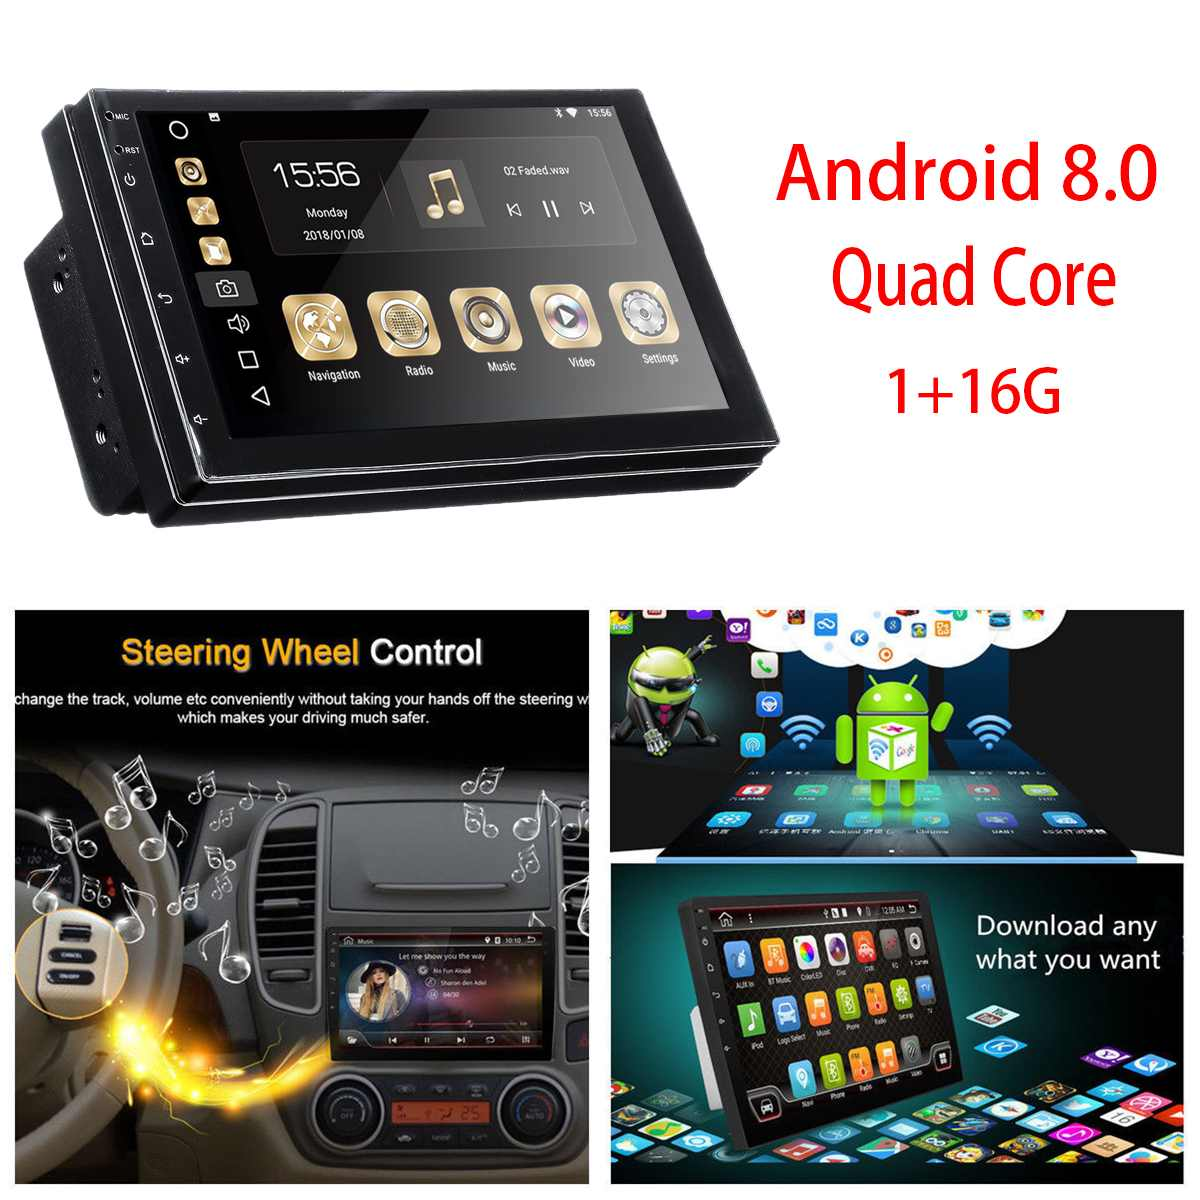 7'' Car Multimedia Player Car Radio Stereo 2 DIN for Android 8.0 WIFI Bluetooth MP5 Player GPS Nav Quad Core Audio Video NEW